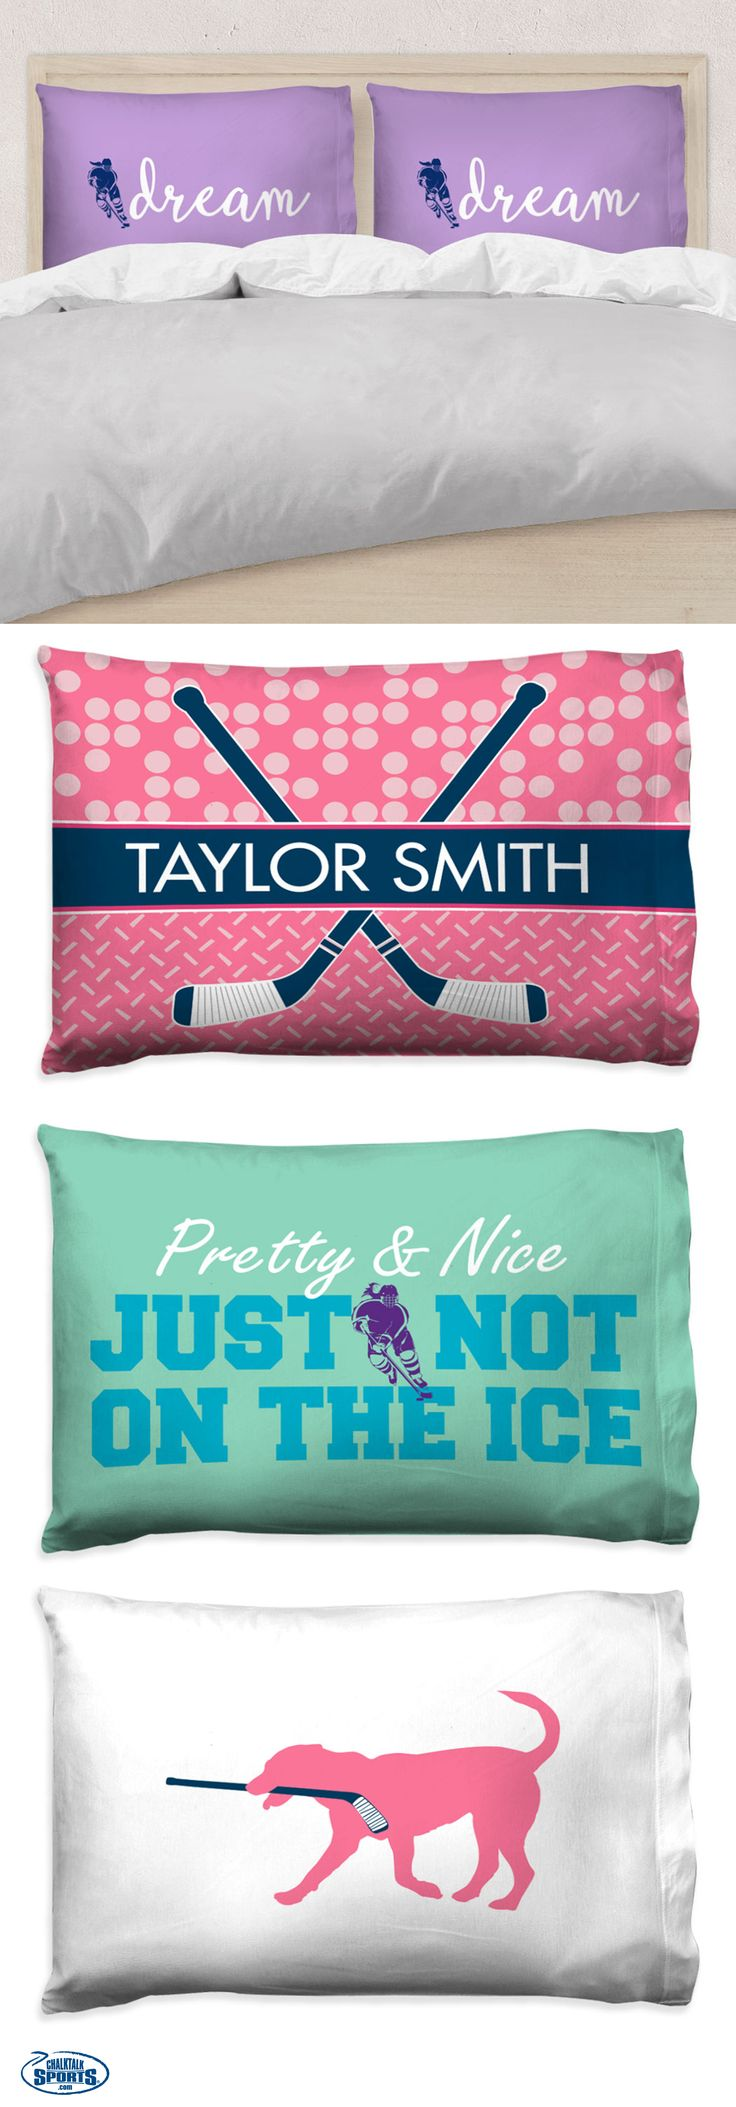 Our newest pillow cases will serve as the perfect touch of hockey spirit to any hockey girls bedroom! Choose from custom colors and personalized options for a special gift that she'll love!